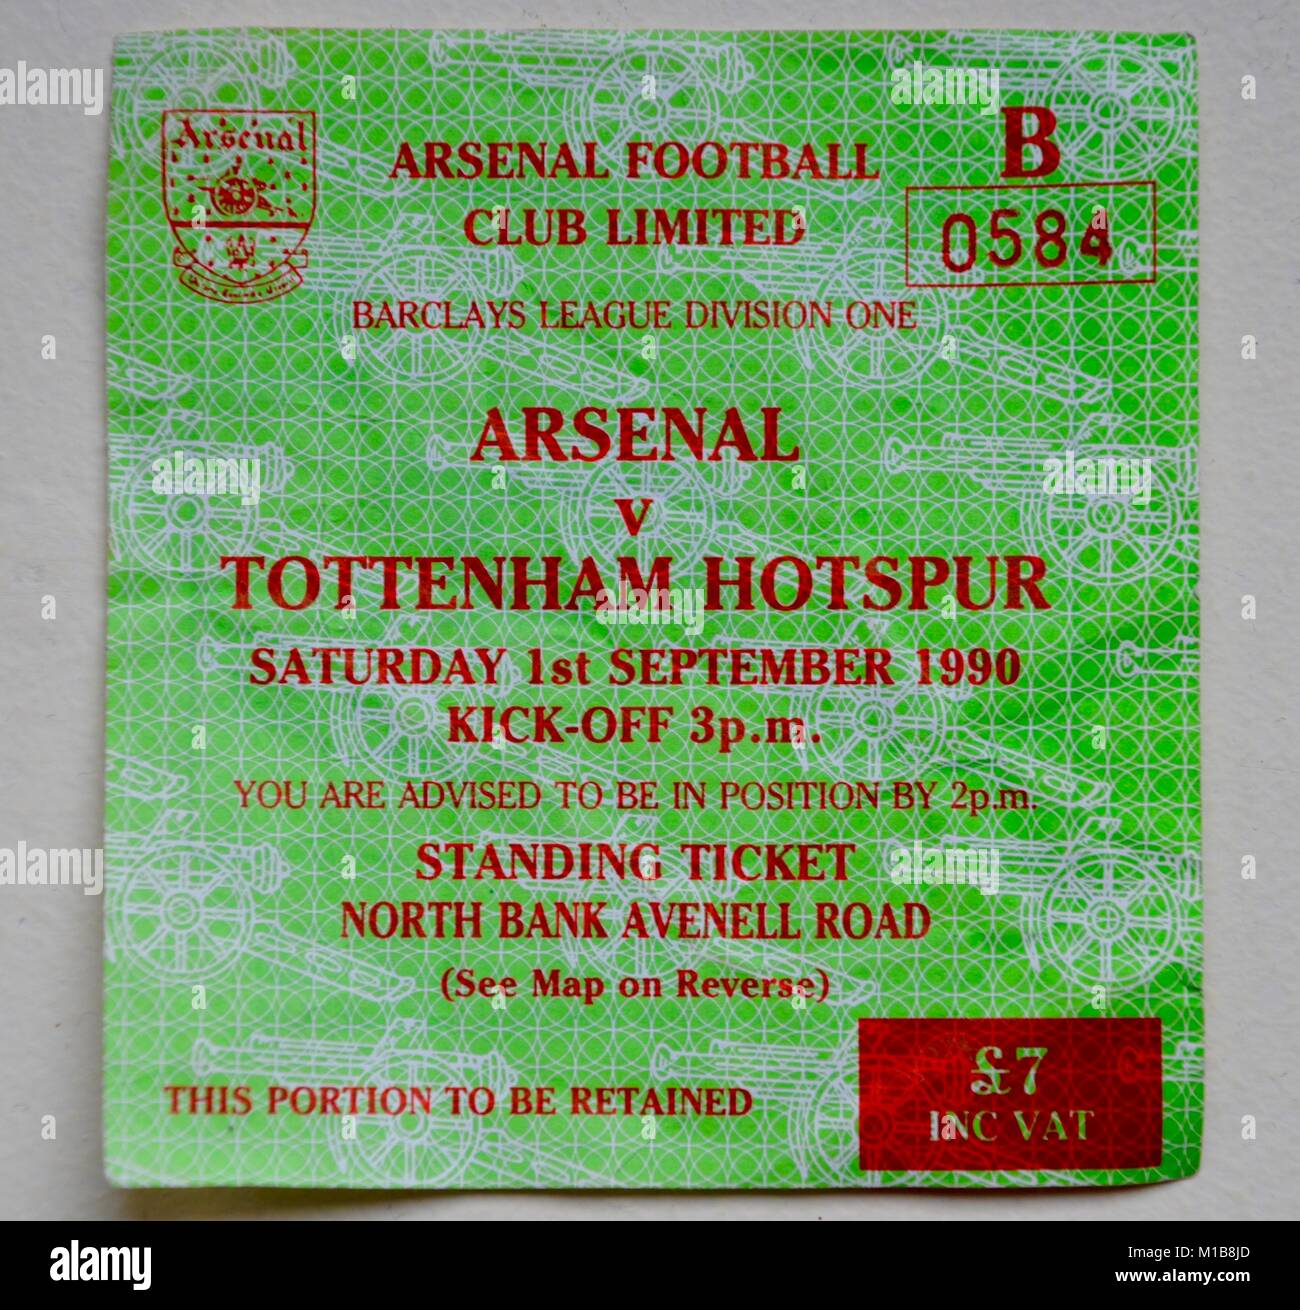 ticket for arsenal versus tottenham hotspur sep 1st 1990 barclays division one - Stock Image